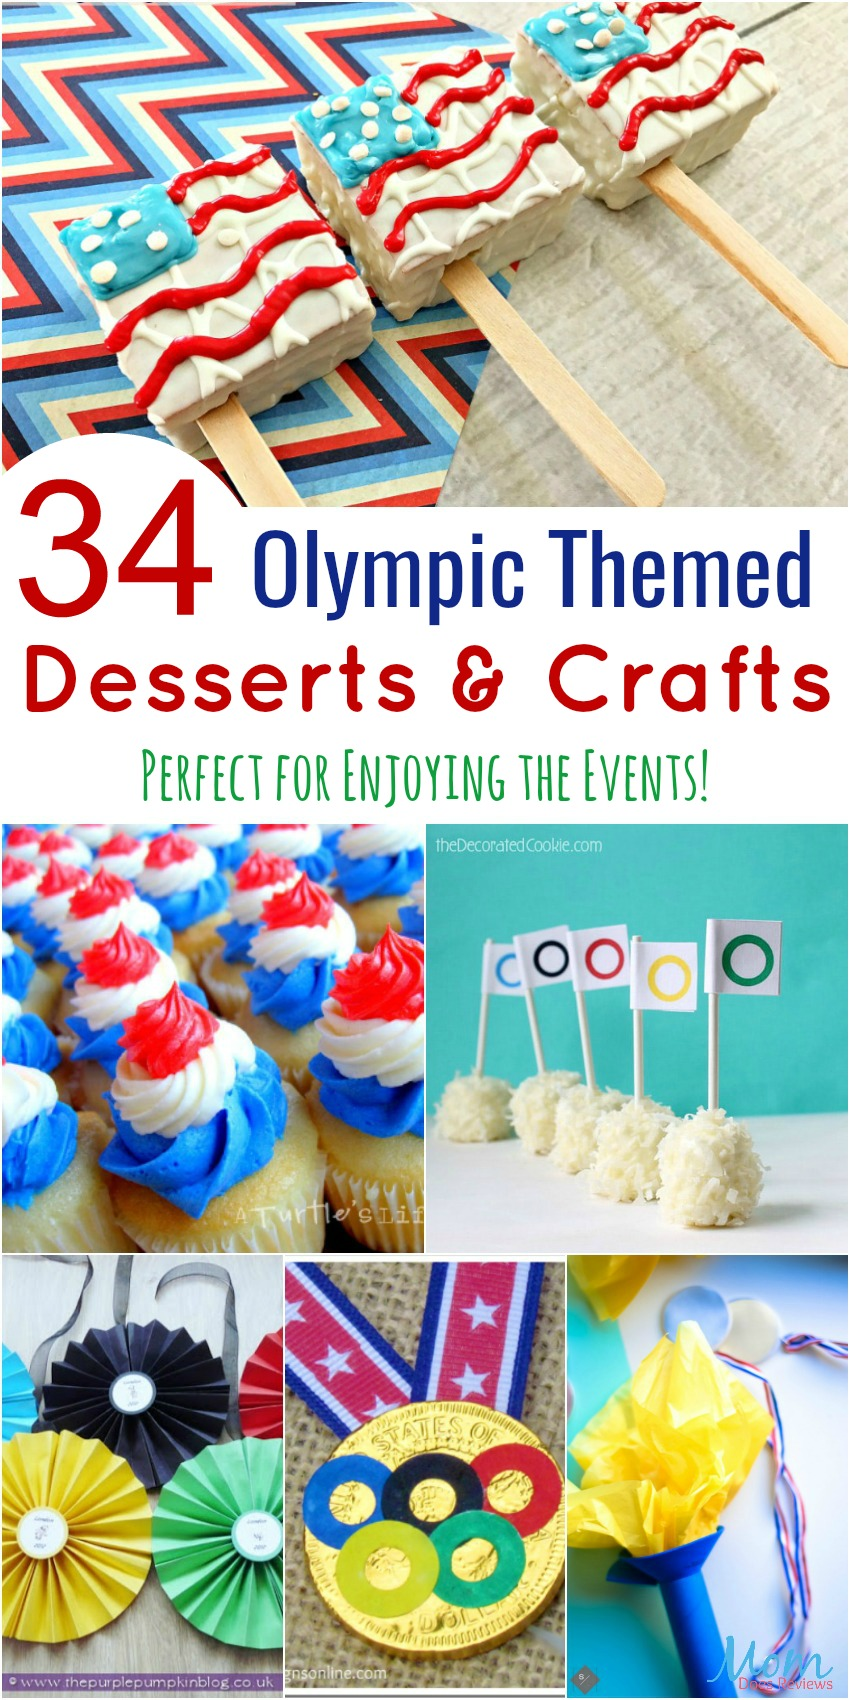 34 Olympic Themed Desserts and Crafts banner